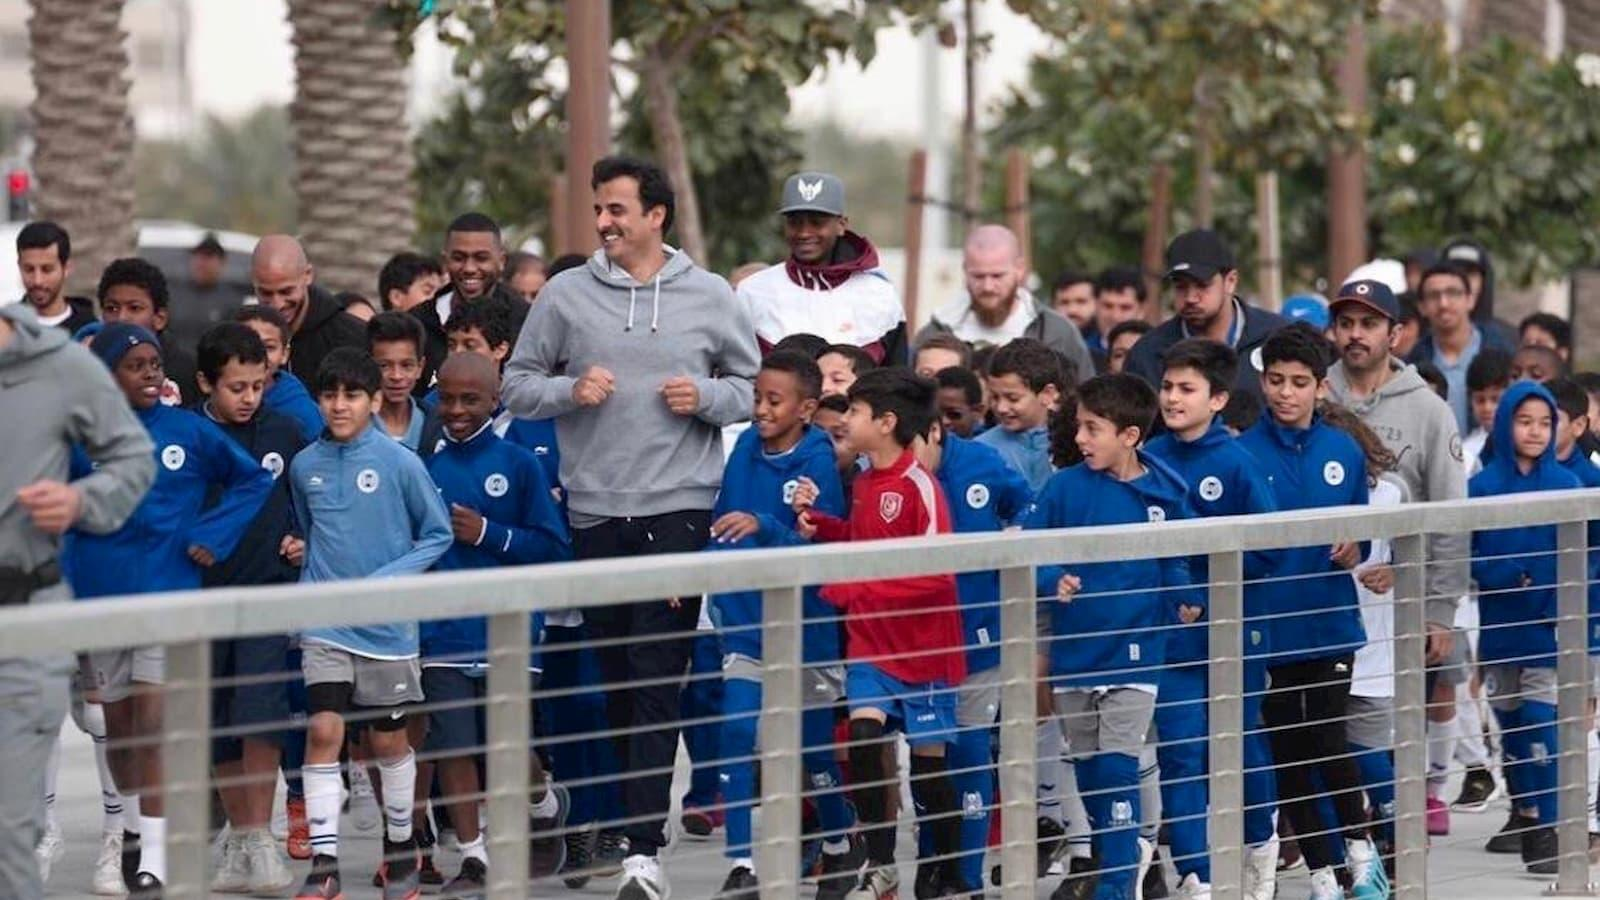 WATCH: HH the Amir takes part in National Sport Day activities